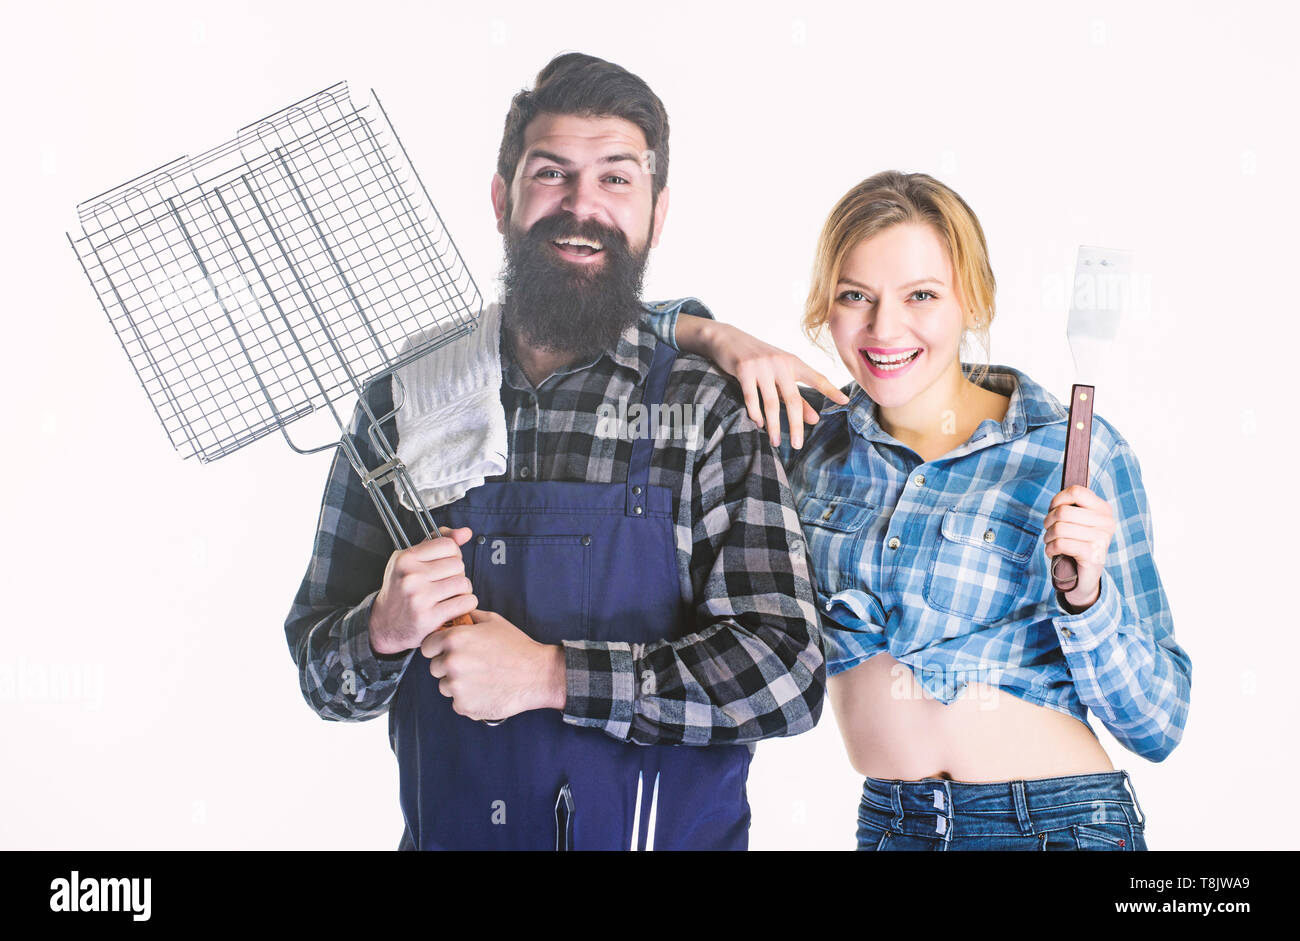 Tools for roasting meat. Couple in love hold kitchen utensils. Family weekend. Man bearded hipster and girl. Preparation and culinary. Picnic barbecue. food cooking recipe. Love is in the air - Stock Image